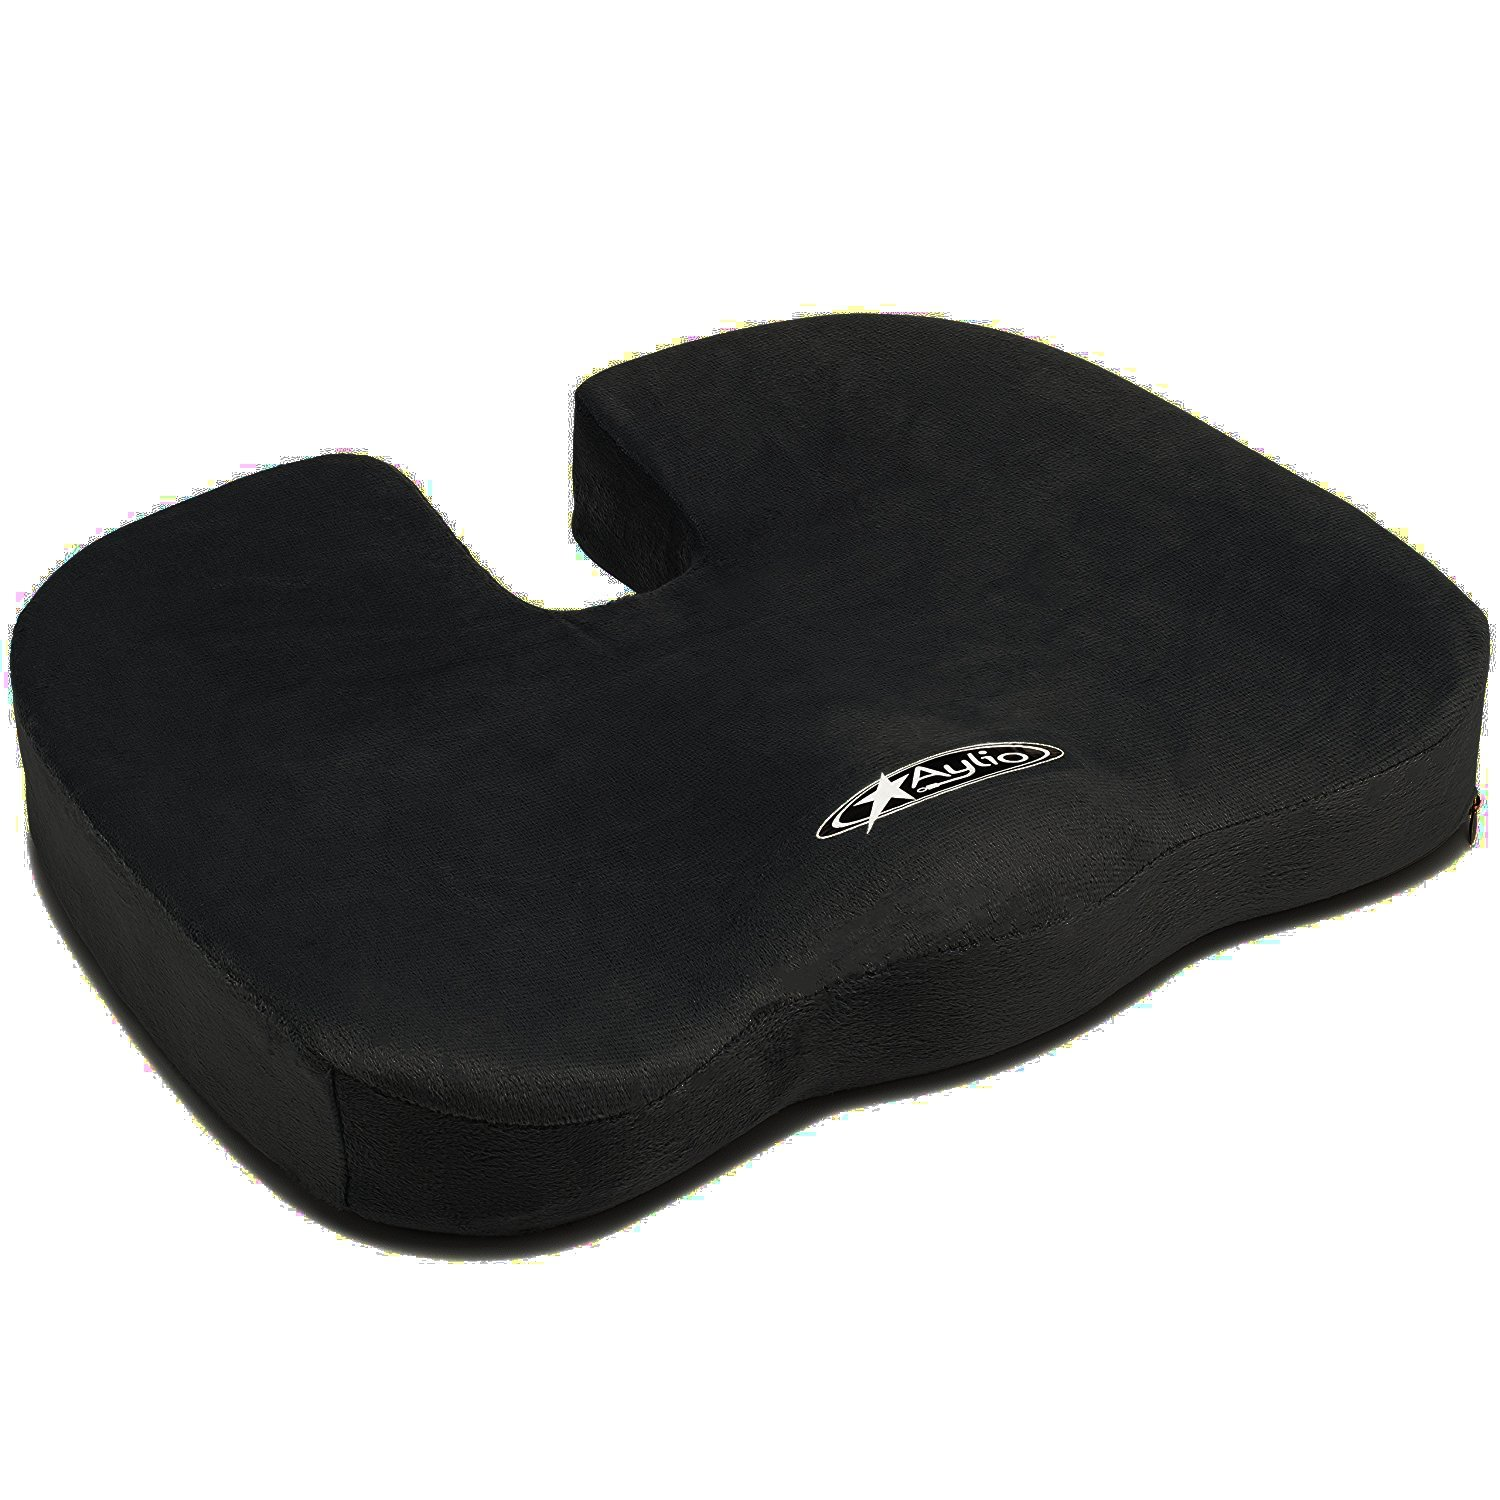 Aylio Coccyx Seat Cushion | Back Support, Tailbone and Sciatica Pain Relief, Washable Cover (Black)